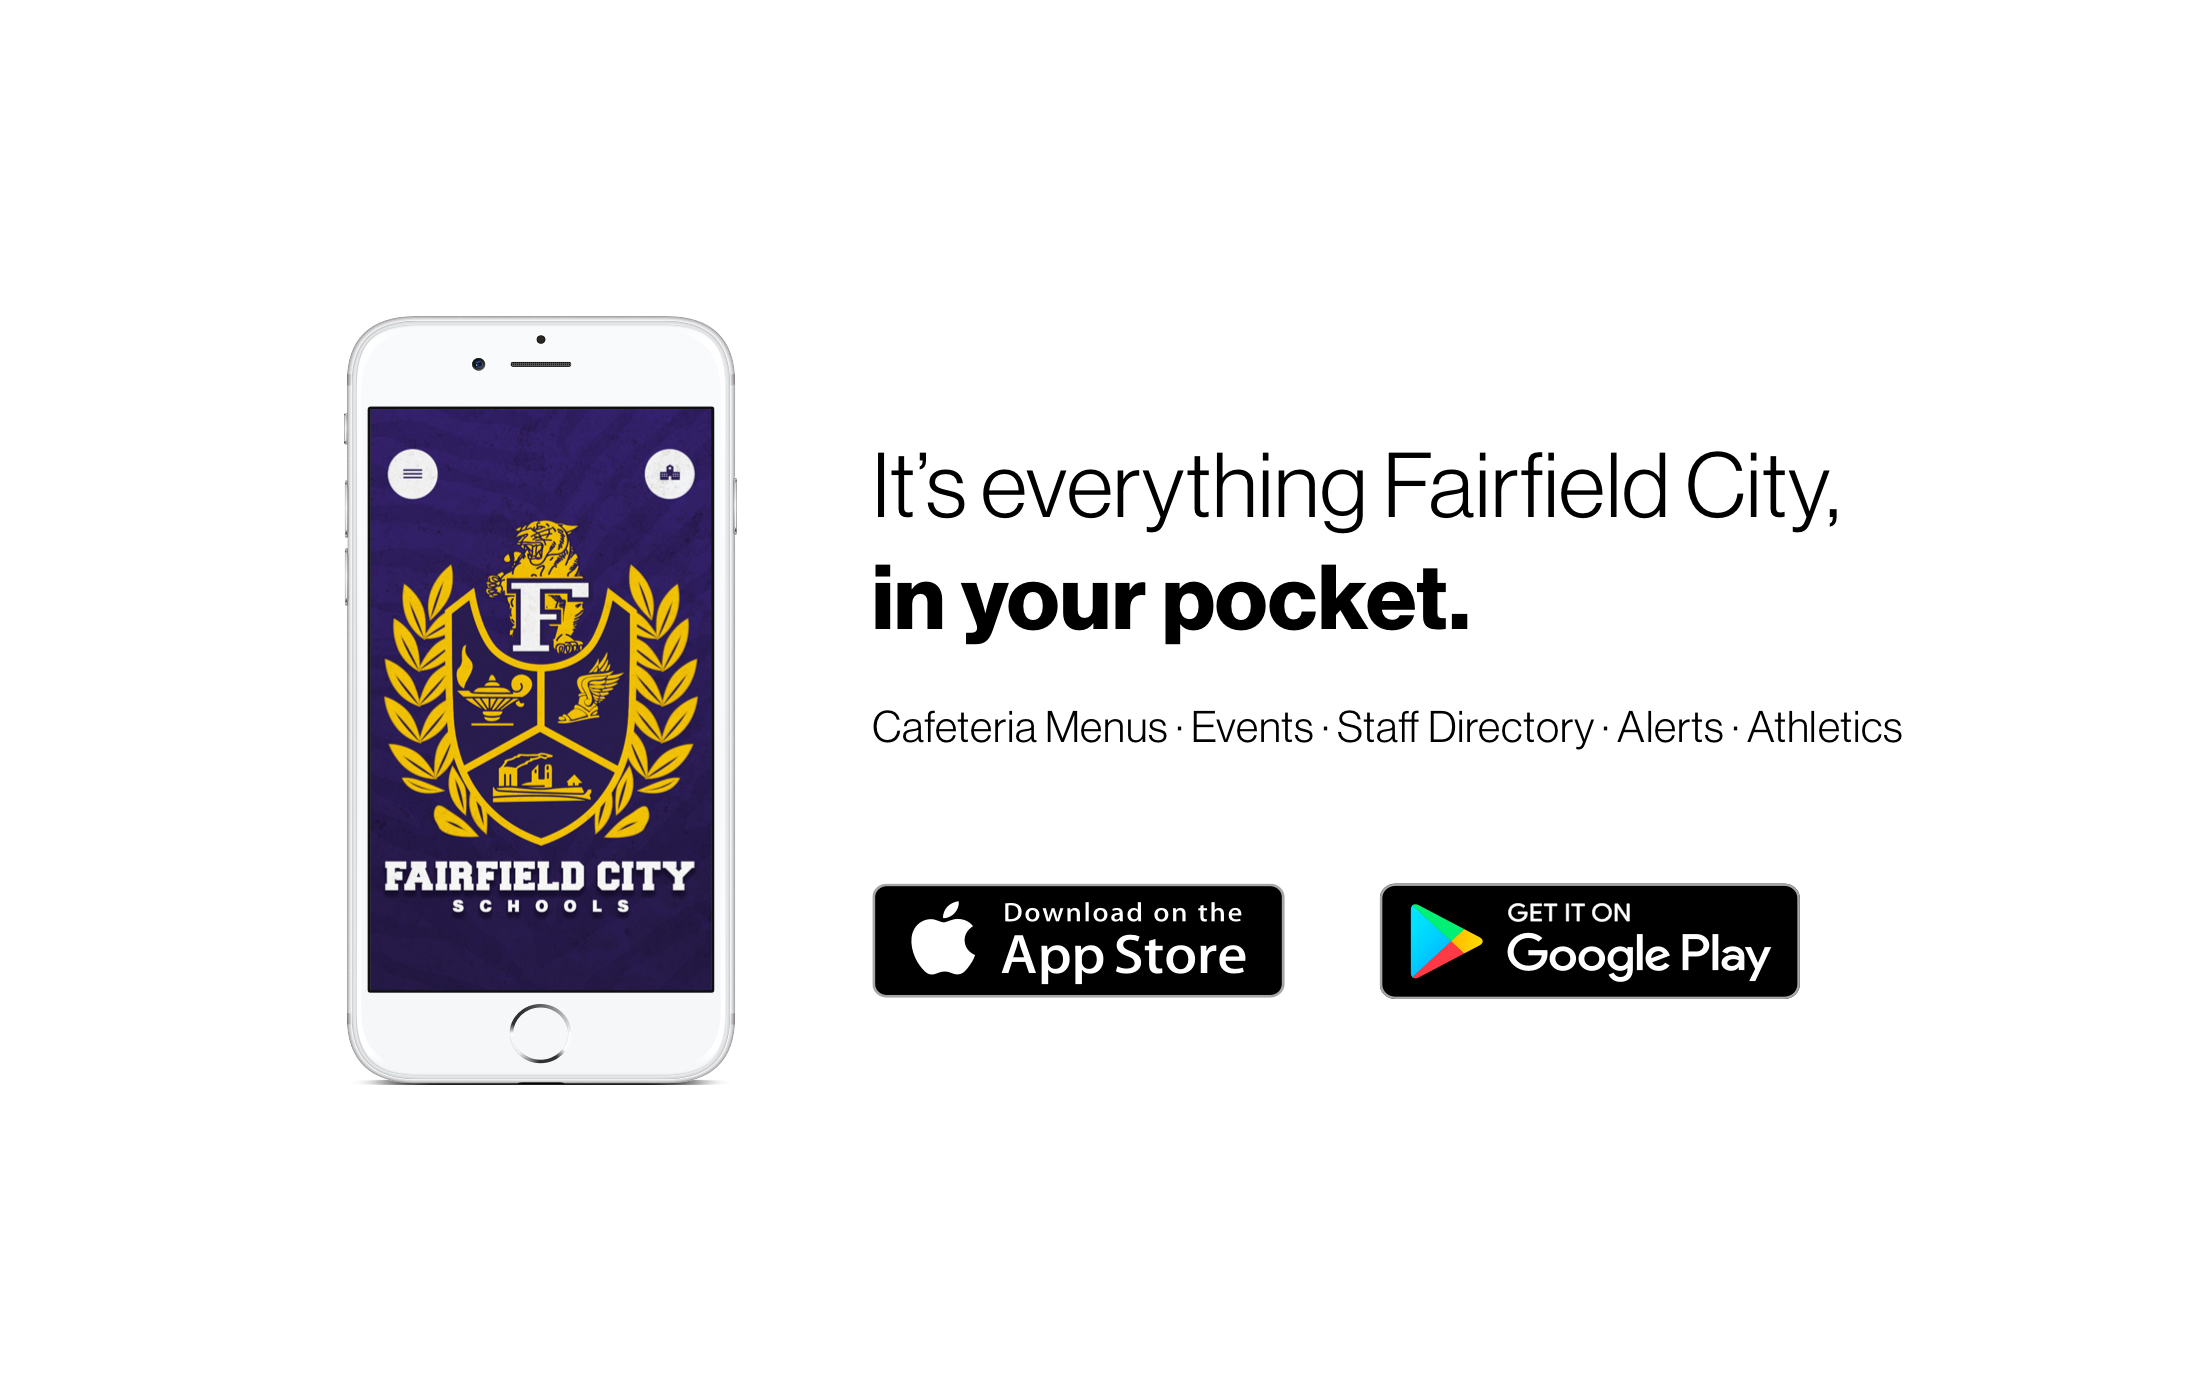 It's everything Fairfield City, in your pocket.